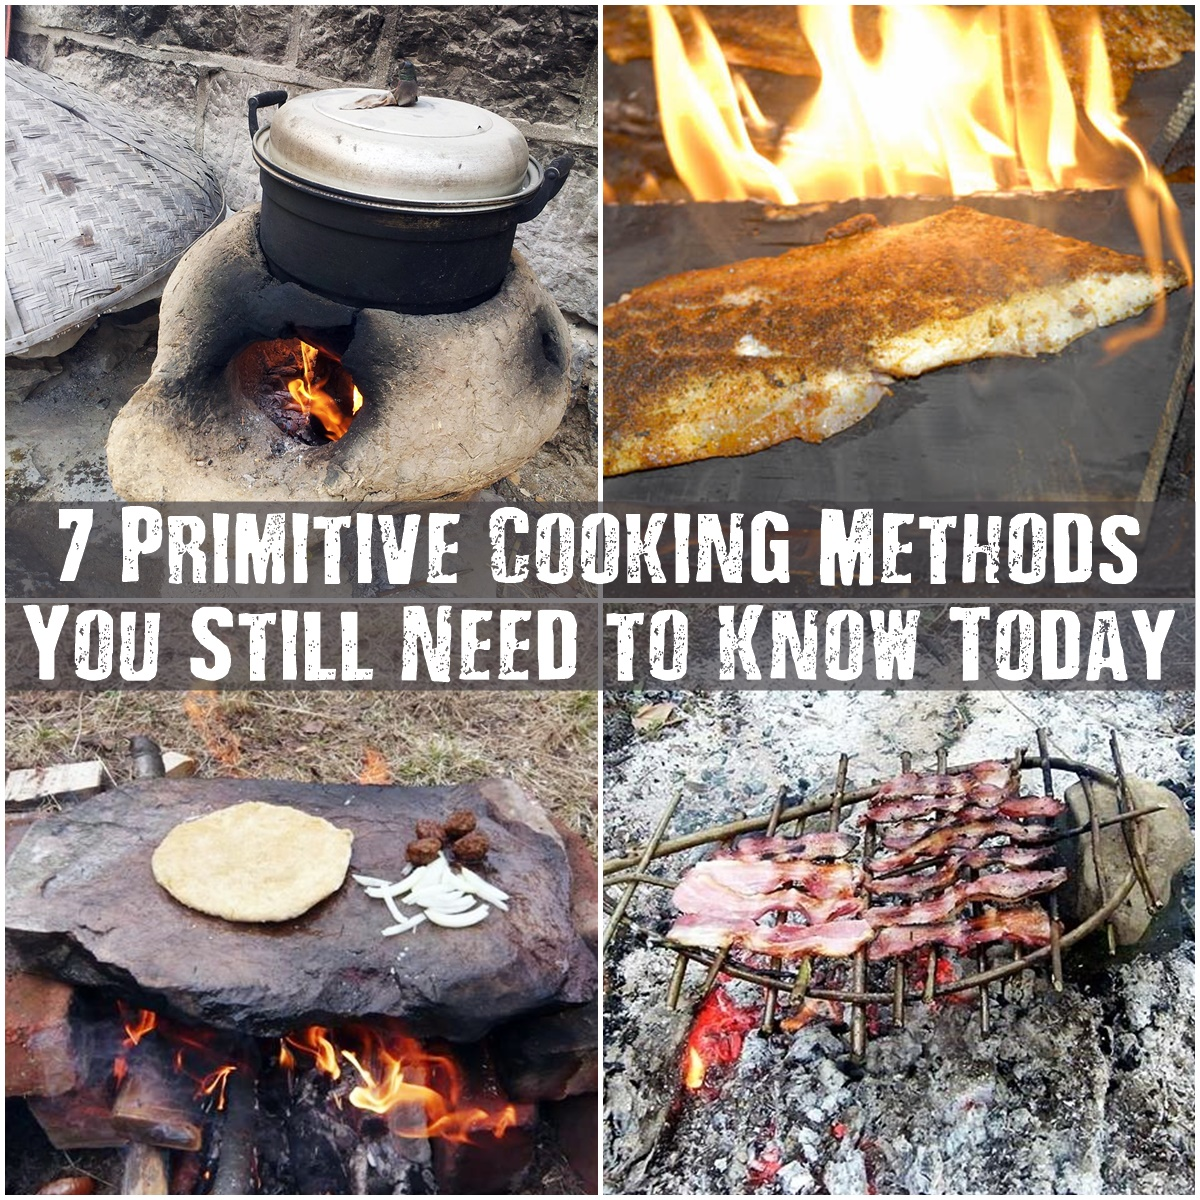 7 Pictures That Will Make You Want To Book A Trip: 7 Primitive Cooking Methods You Still Need To Know Today